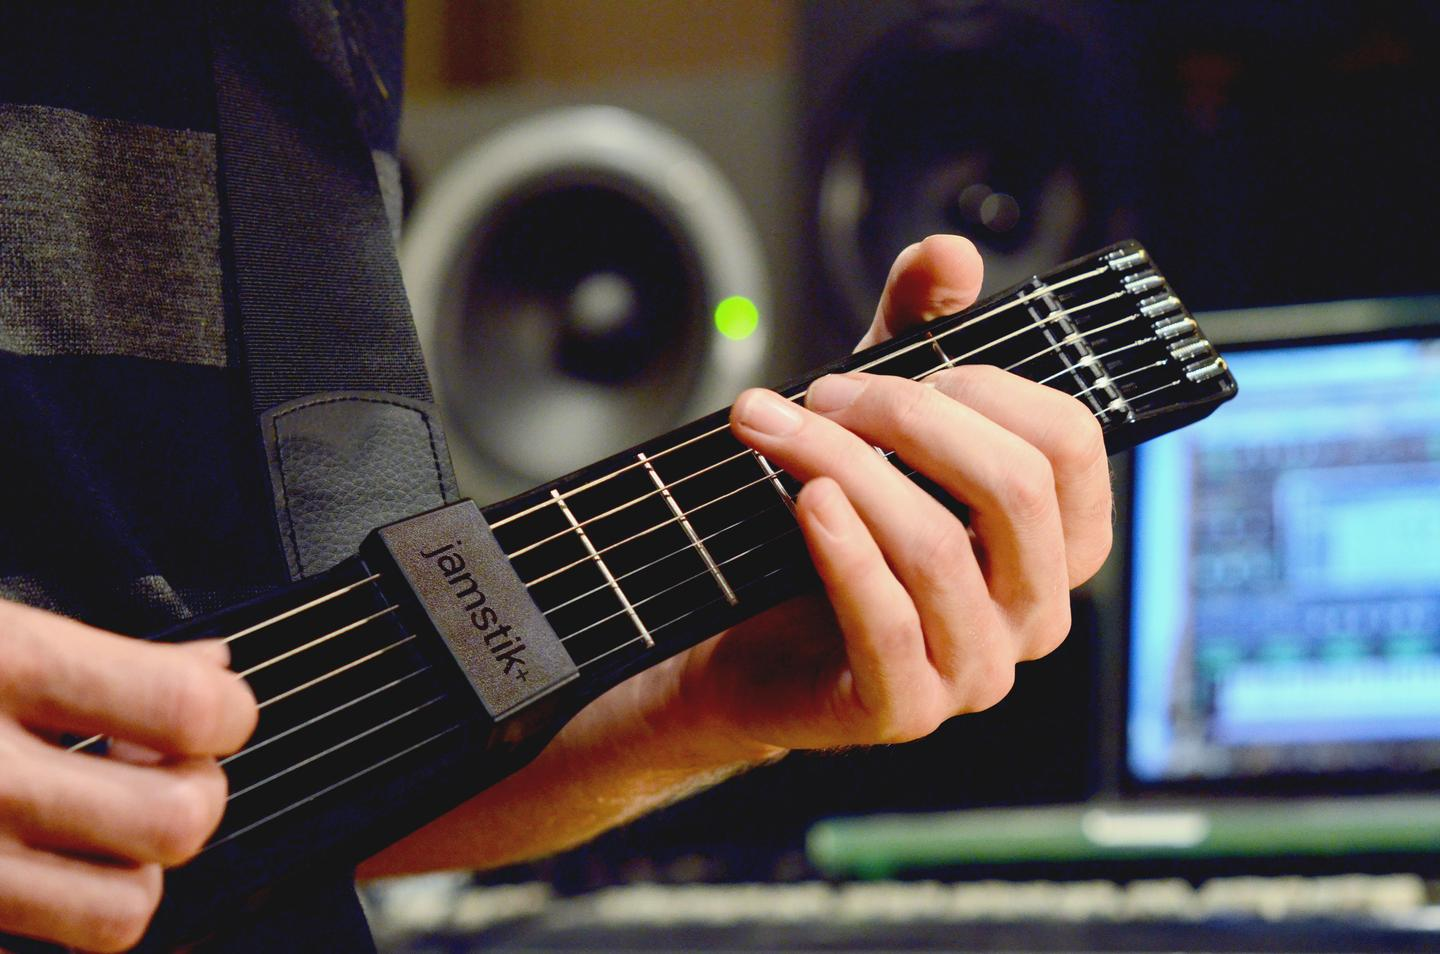 The jamstik+ smart guitar for learners sports IR finger tracking, Bluetooth connectivity and real guitar strings